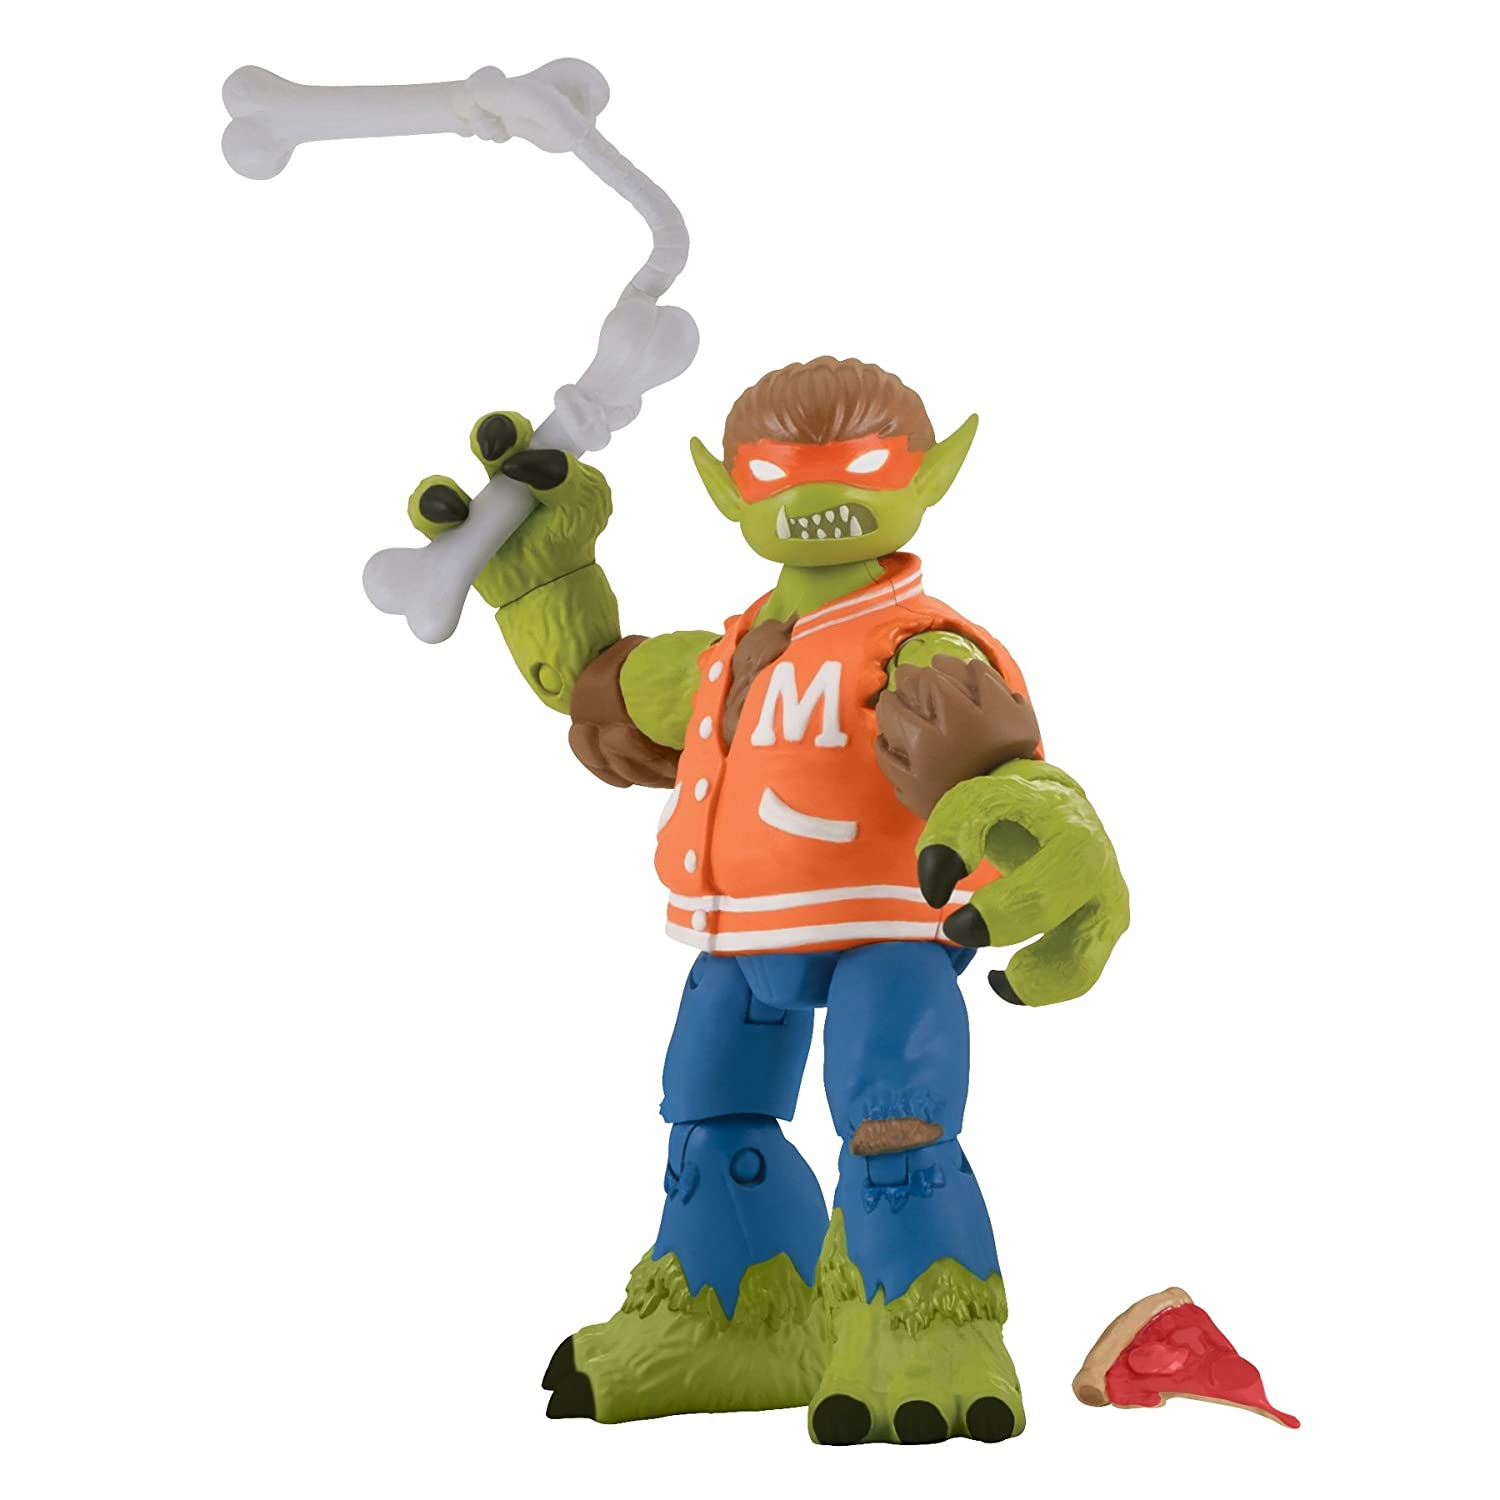 Teenage Mutant Ninja Turtles Werewolf Michelangelo Basic Action Figure, 5""